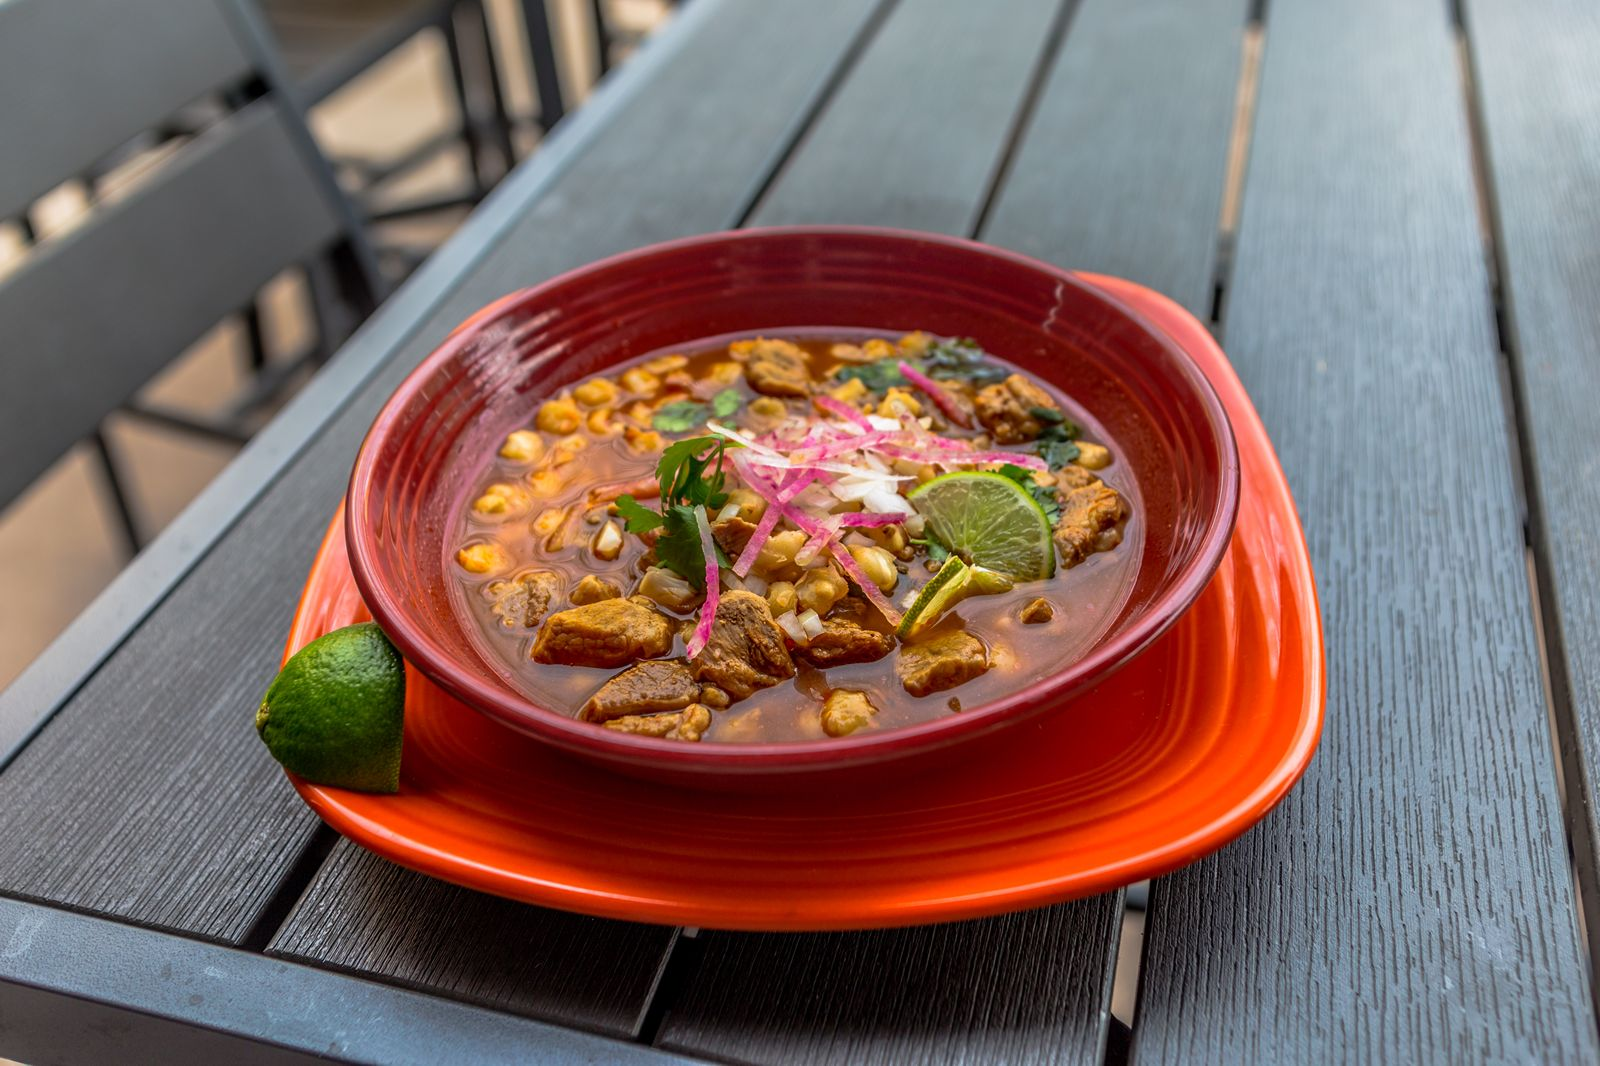 Cien Agaves Tacos & Tequila Brings the Heat This Winter with the Addition of Spicy Pozole and Michelada to the Menu